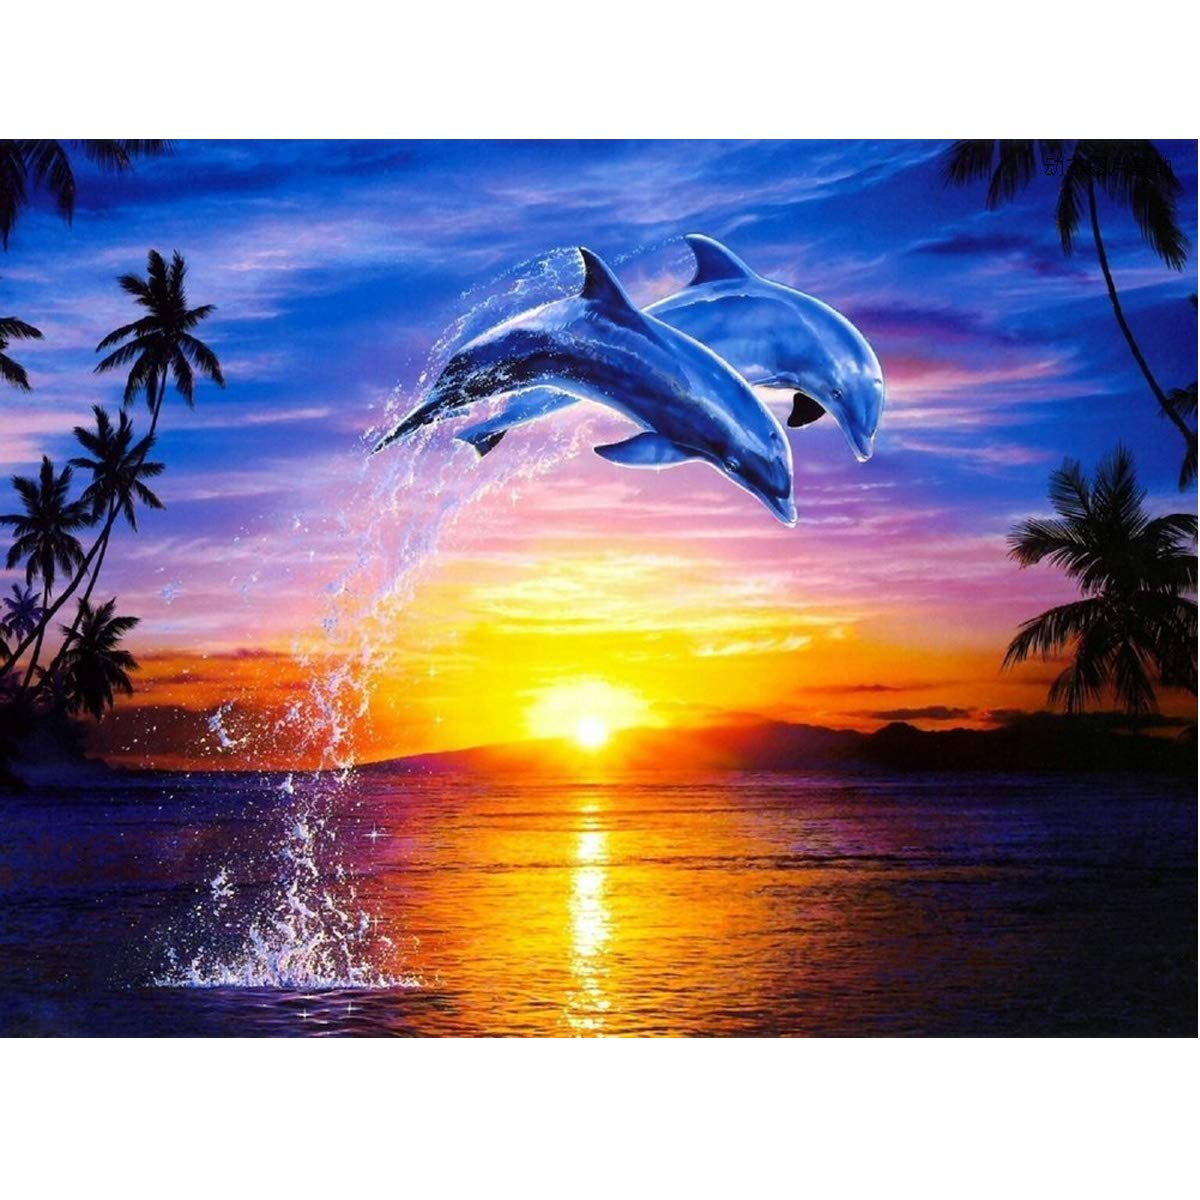 DIY 5D Diamond Painting by Number Kits Full Round Drill Rhinestone Embroidery Cross Stitch Picture Art Craft Home Wall Decor Dolphin Love 12x16In MXJSUA